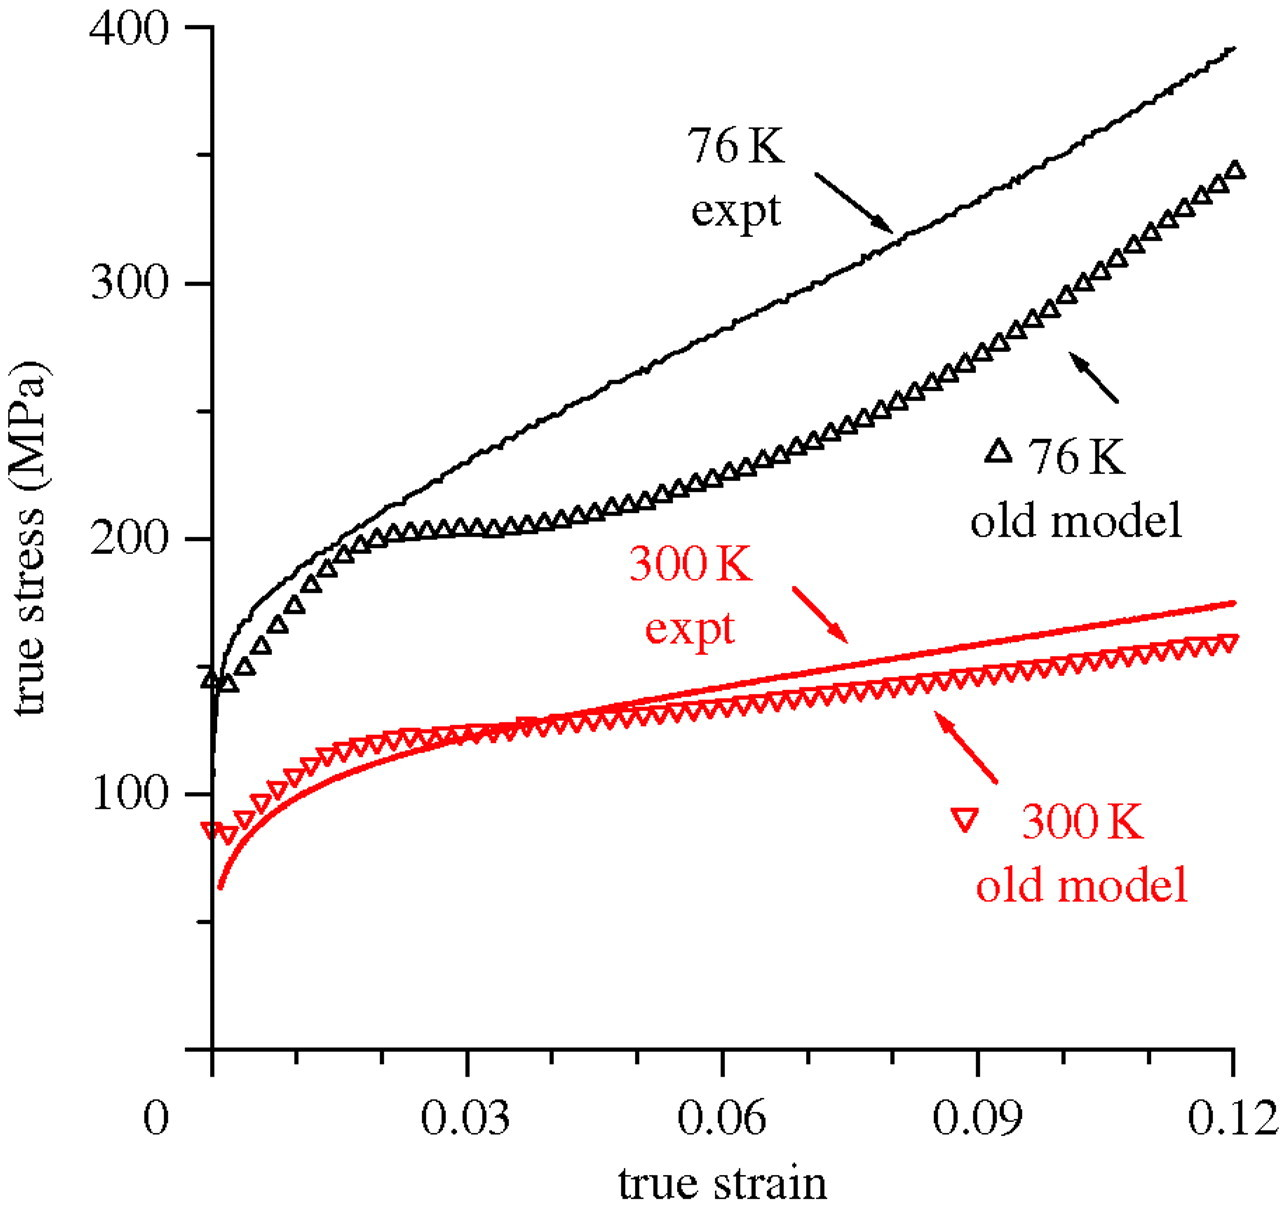 A probabilistic twin nucleation model for HCP polycrystalline metals